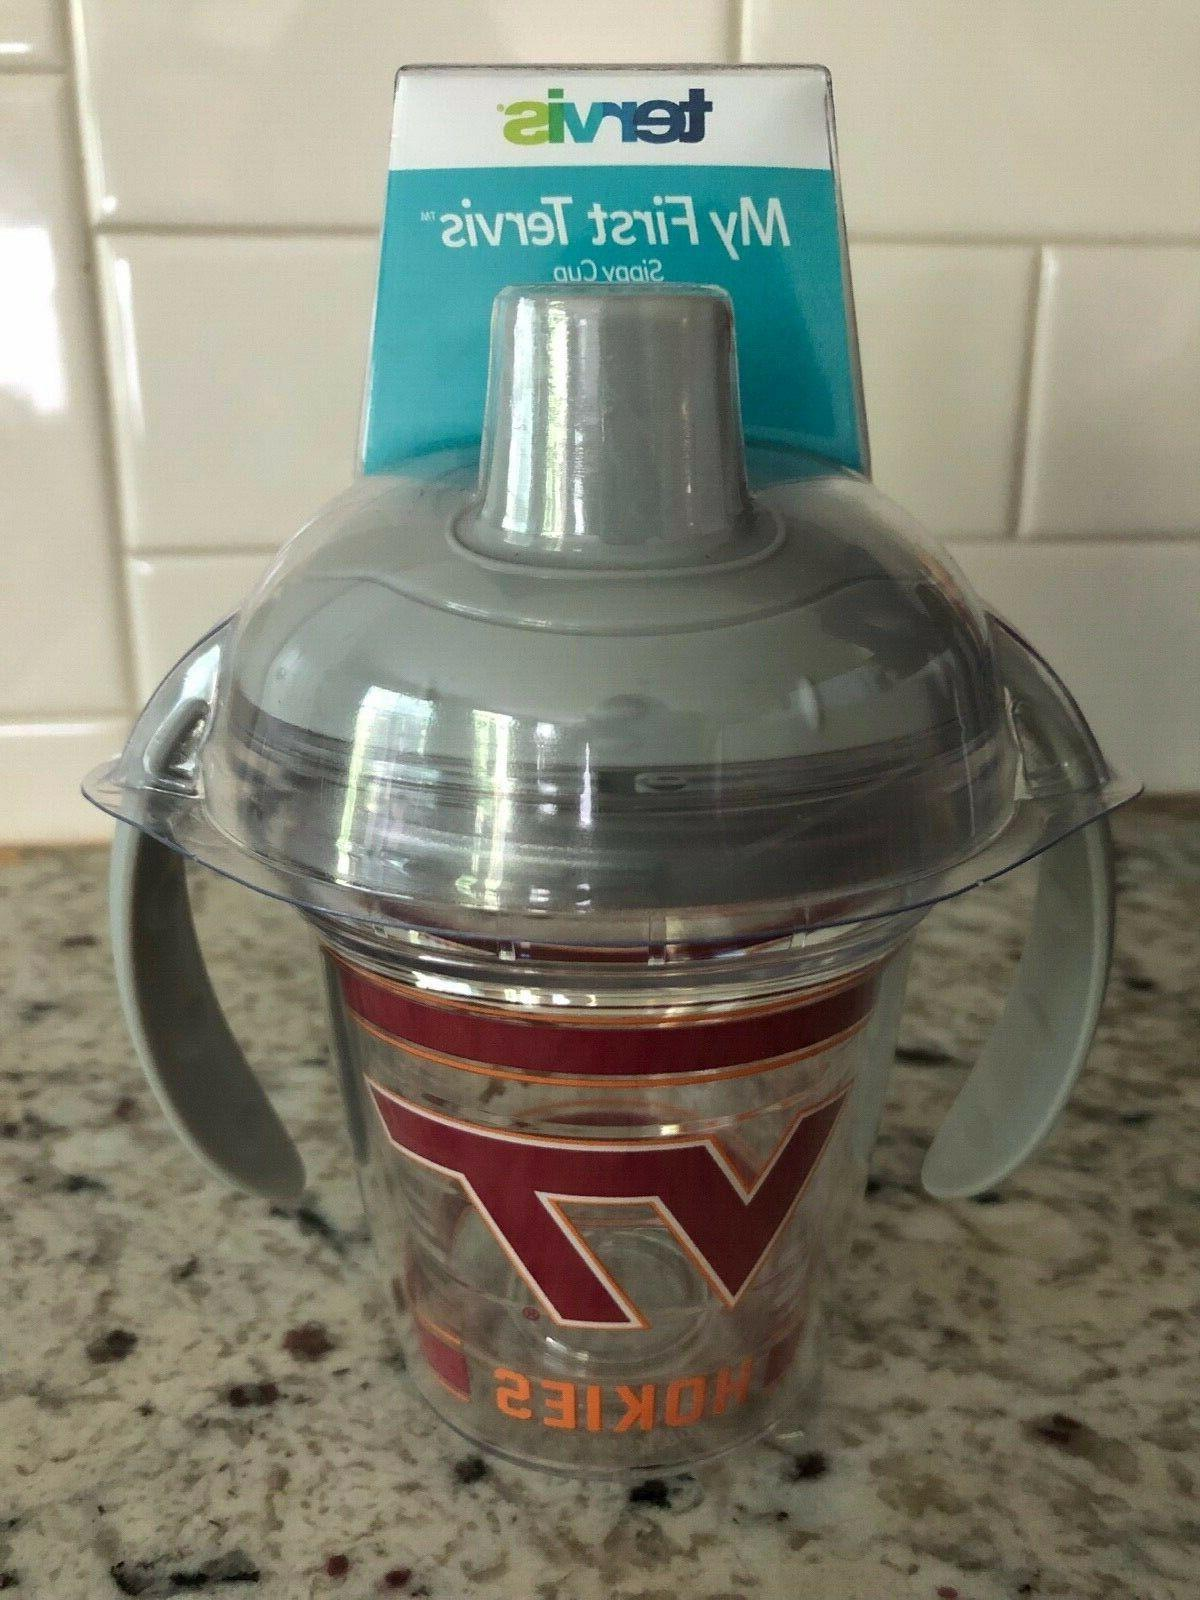 virginia tech my first sippy cup new